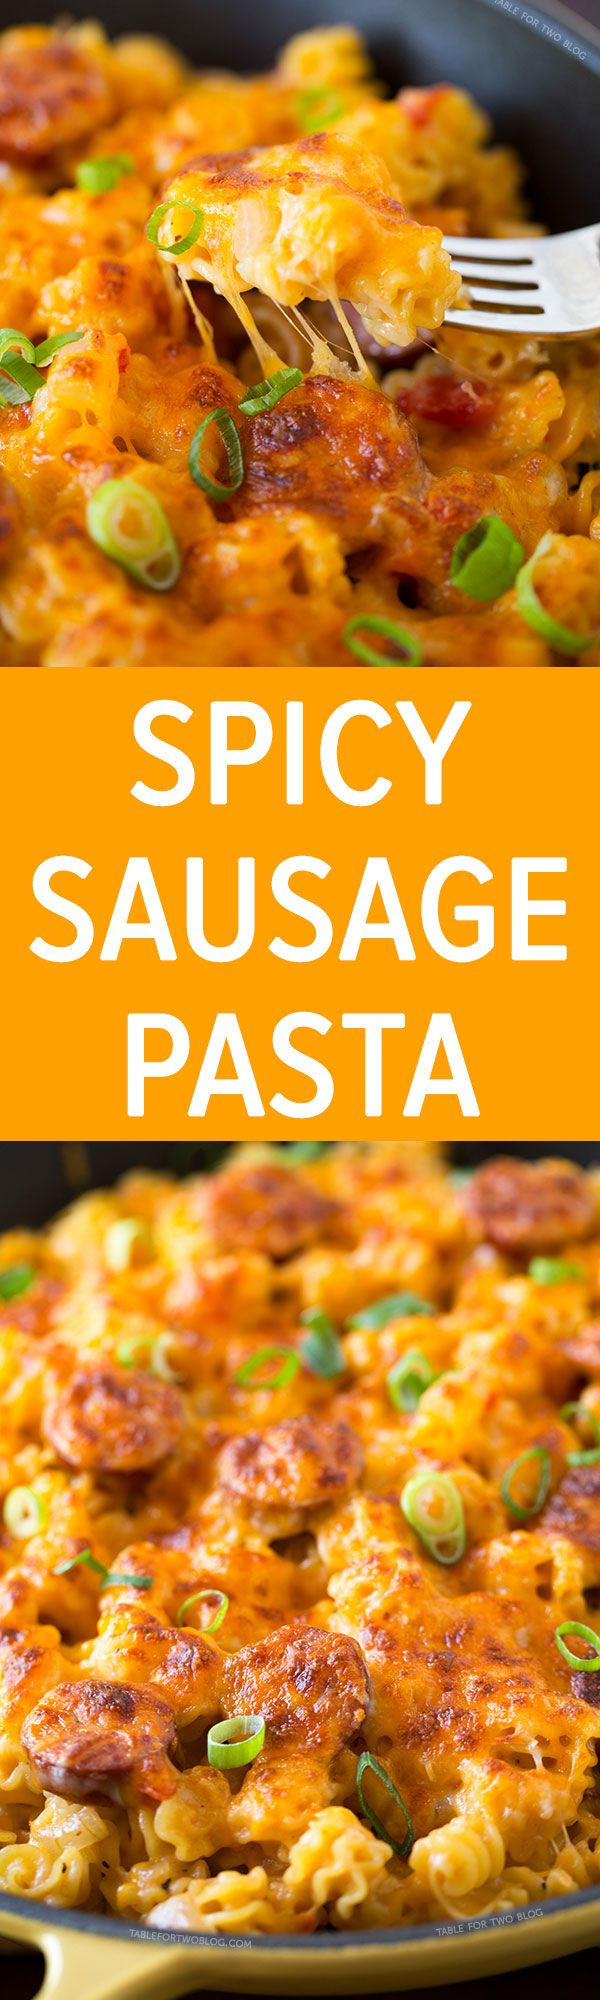 This spicy sausage pasta cooks in one pot and it's ready in no time! It's got so much flavor and a little kick at the end of every bite!